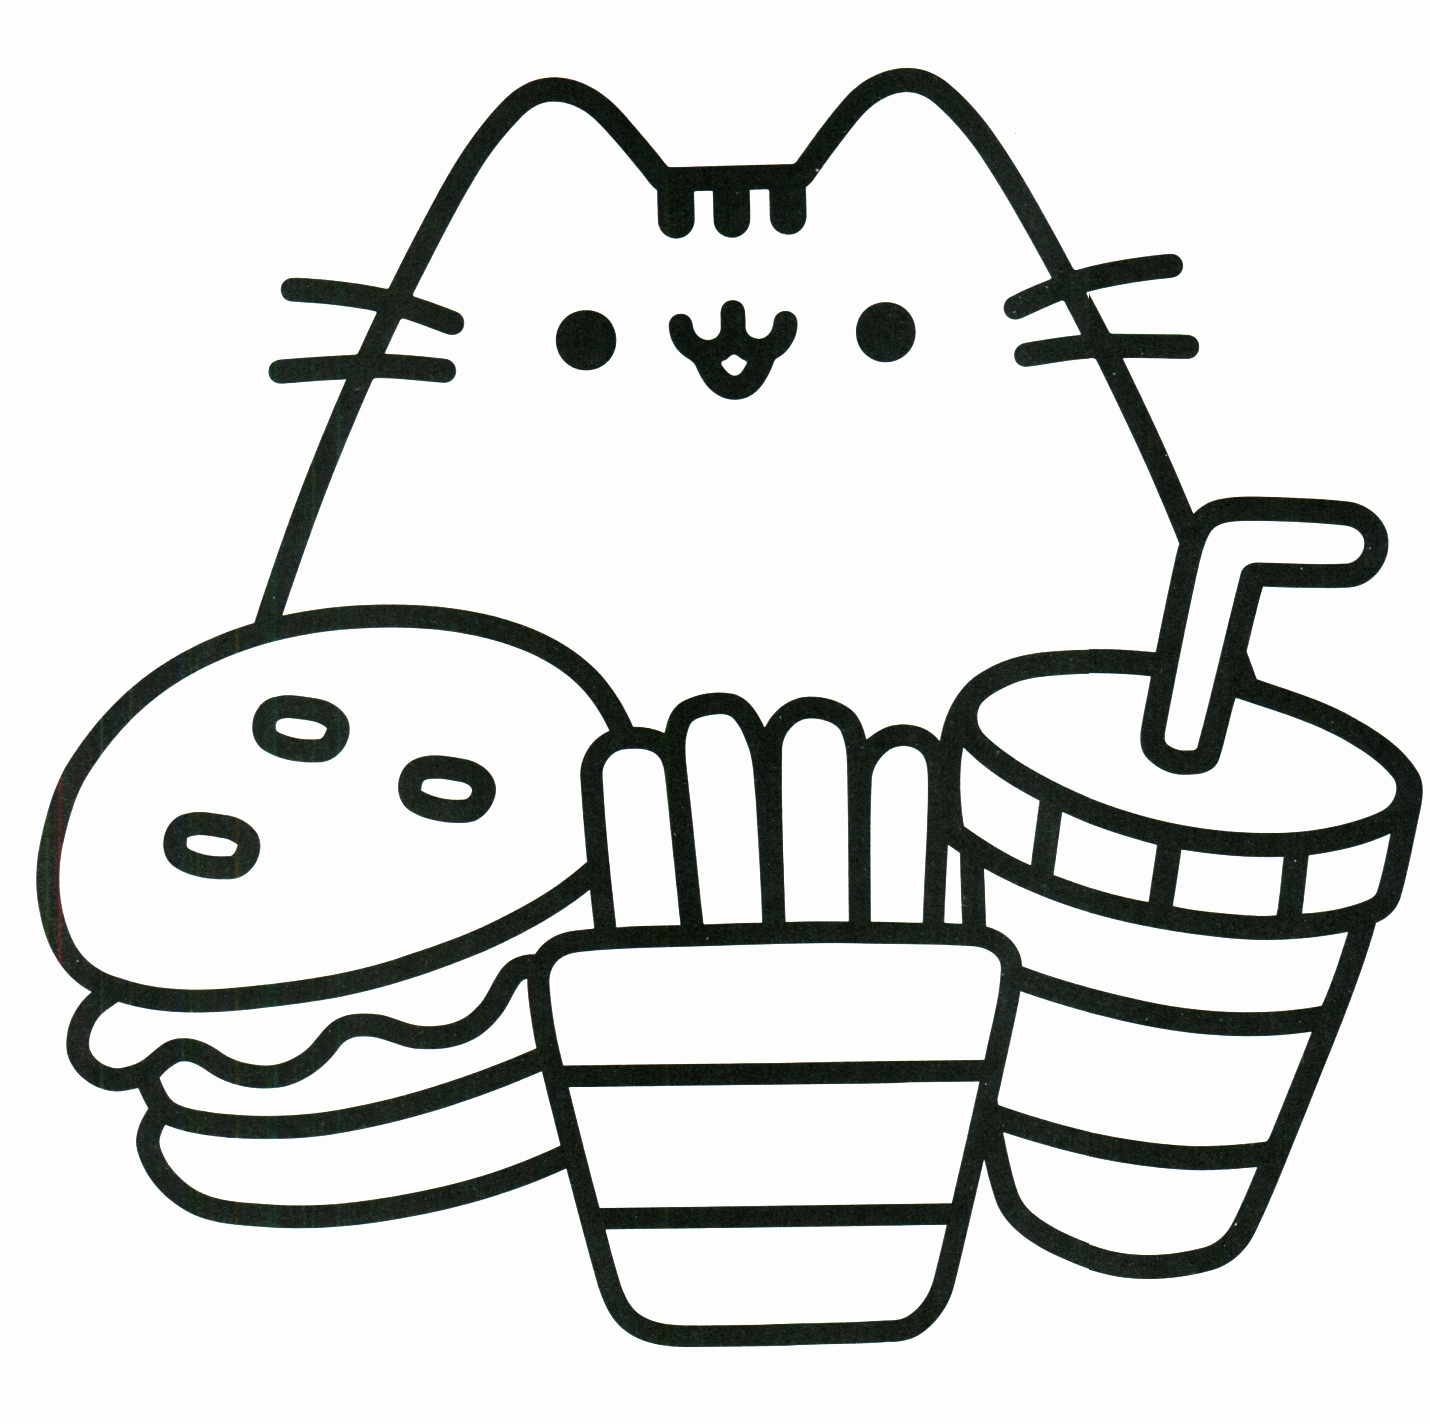 printable hello kitty coloring pages Download-Awesome Free Printable Hello Kitty Coloring Pages New Cool Od Dog Coloring 2-p